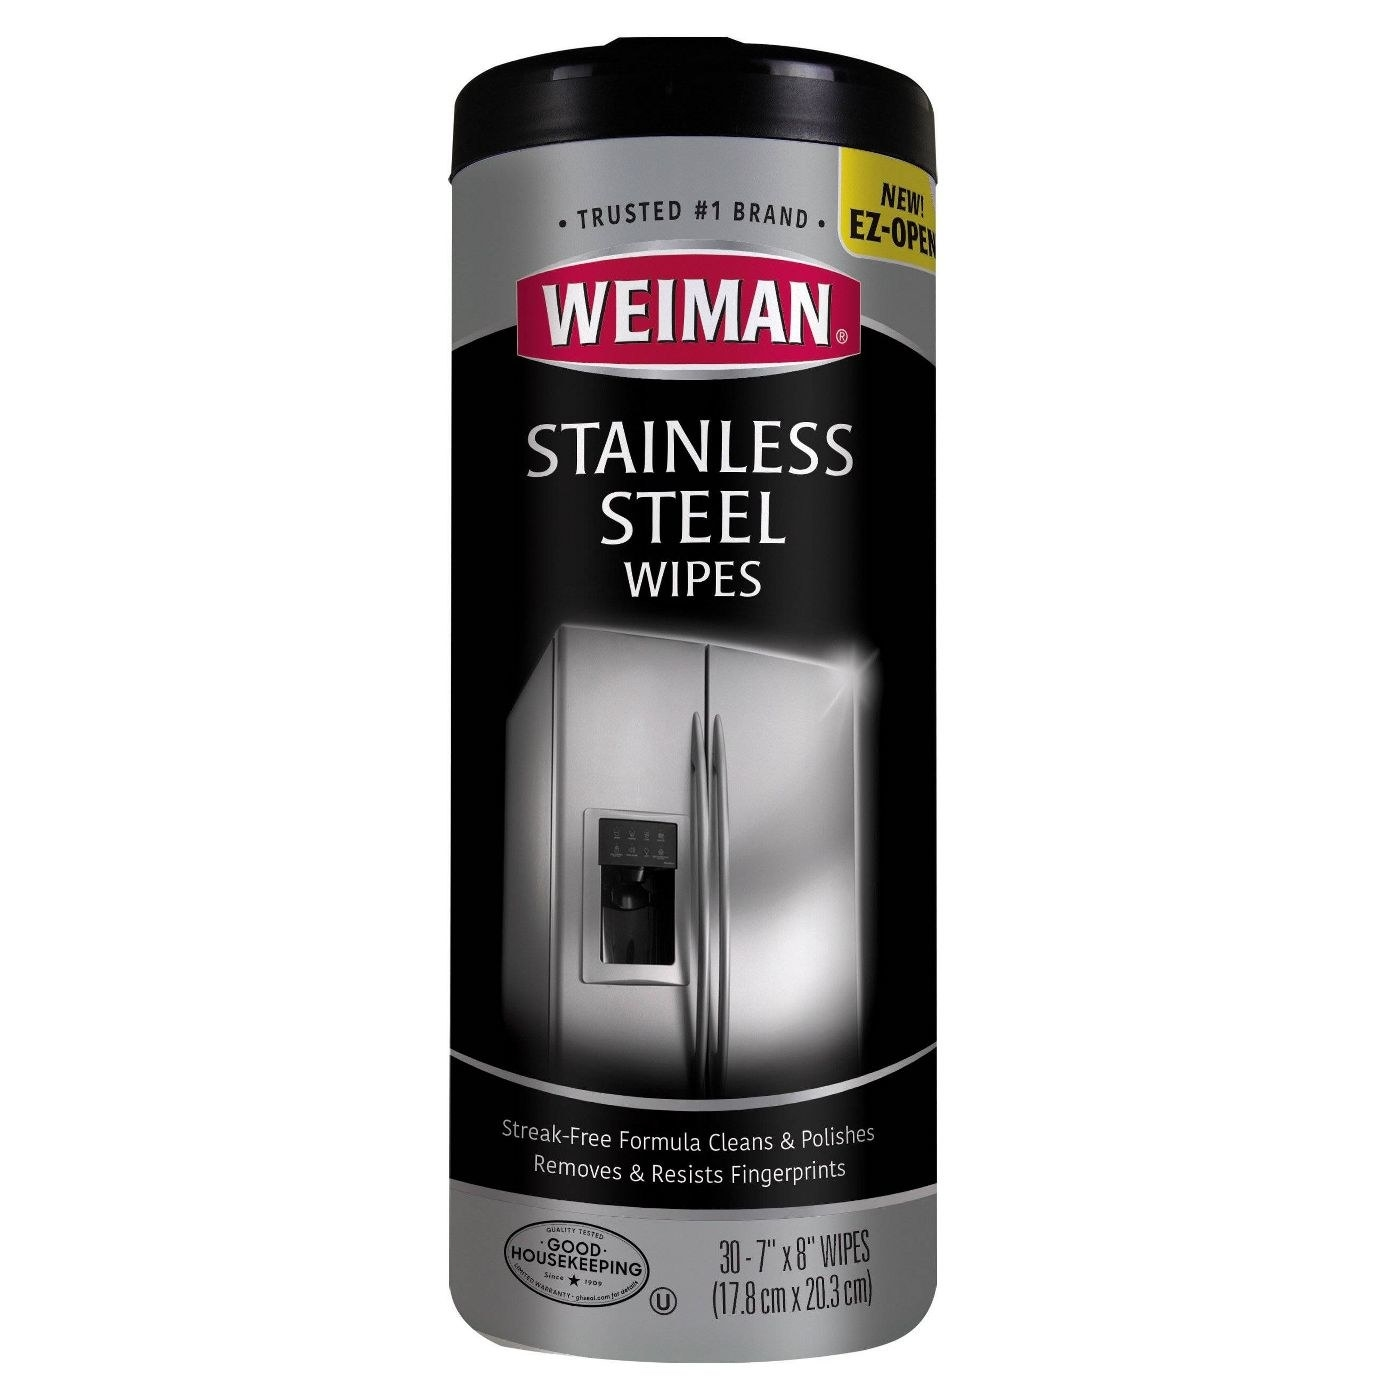 a pack of stainless steel wipes on a white background